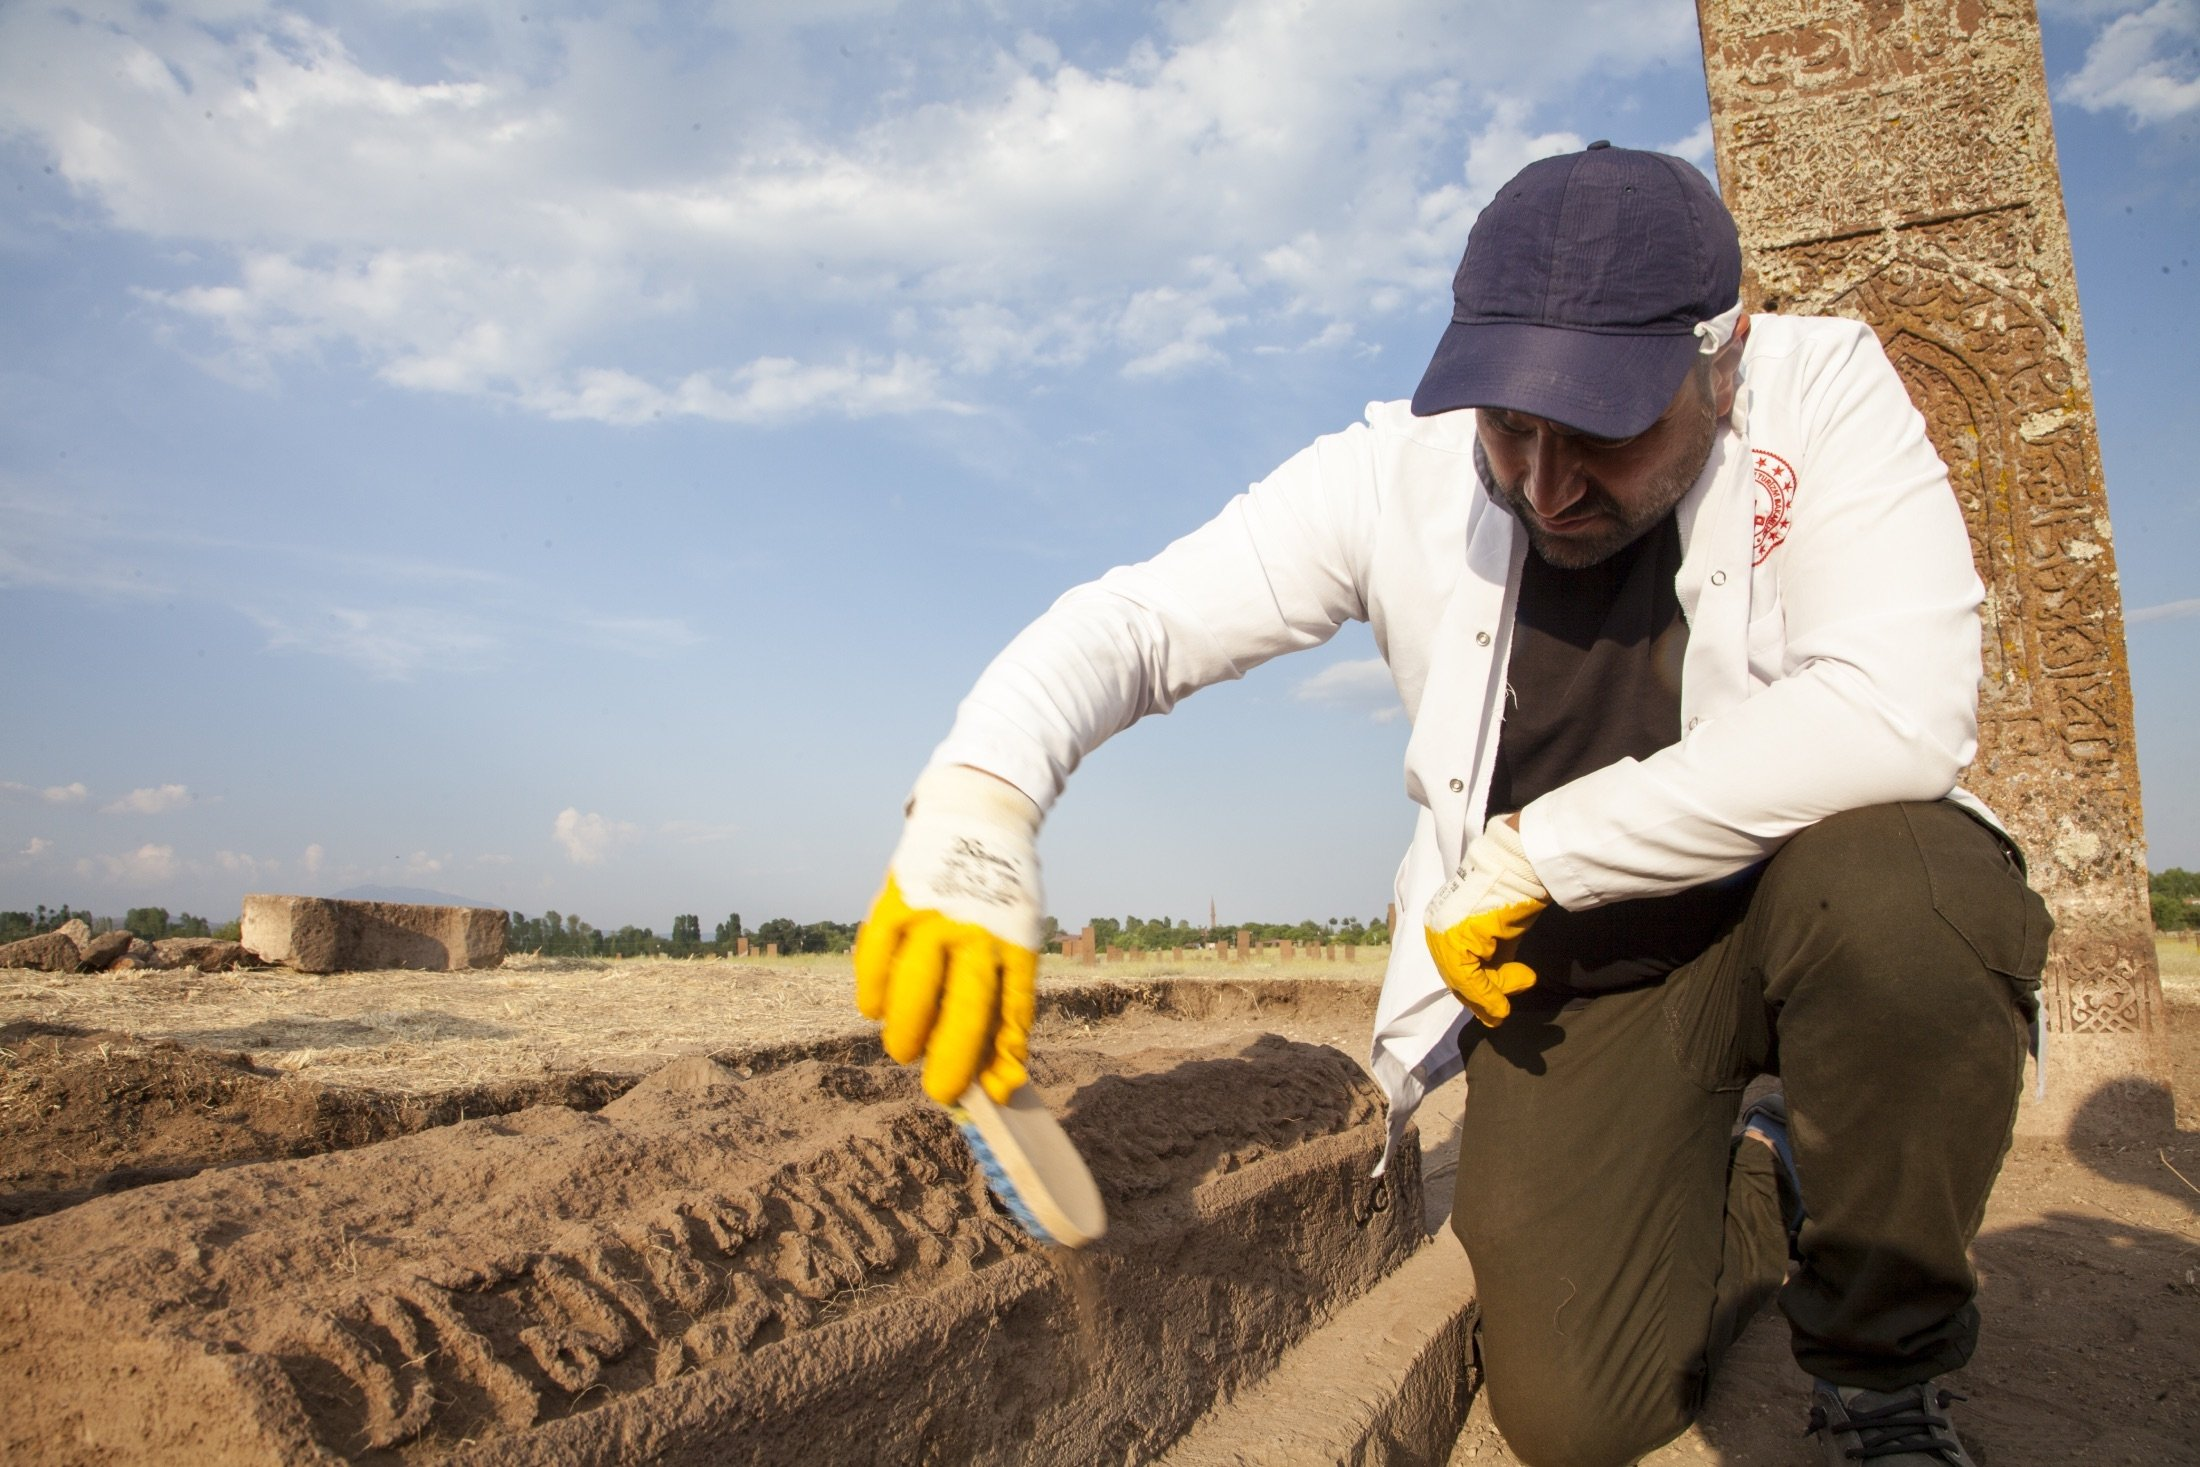 Member of the excavation team carries out archaeological work at an unidentified Seljuk grave